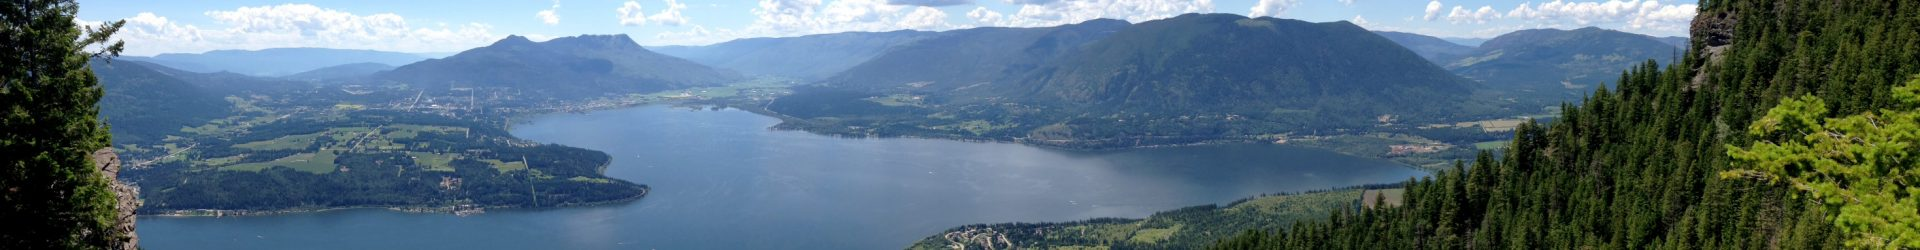 Consultation begins in Salmon Arm area